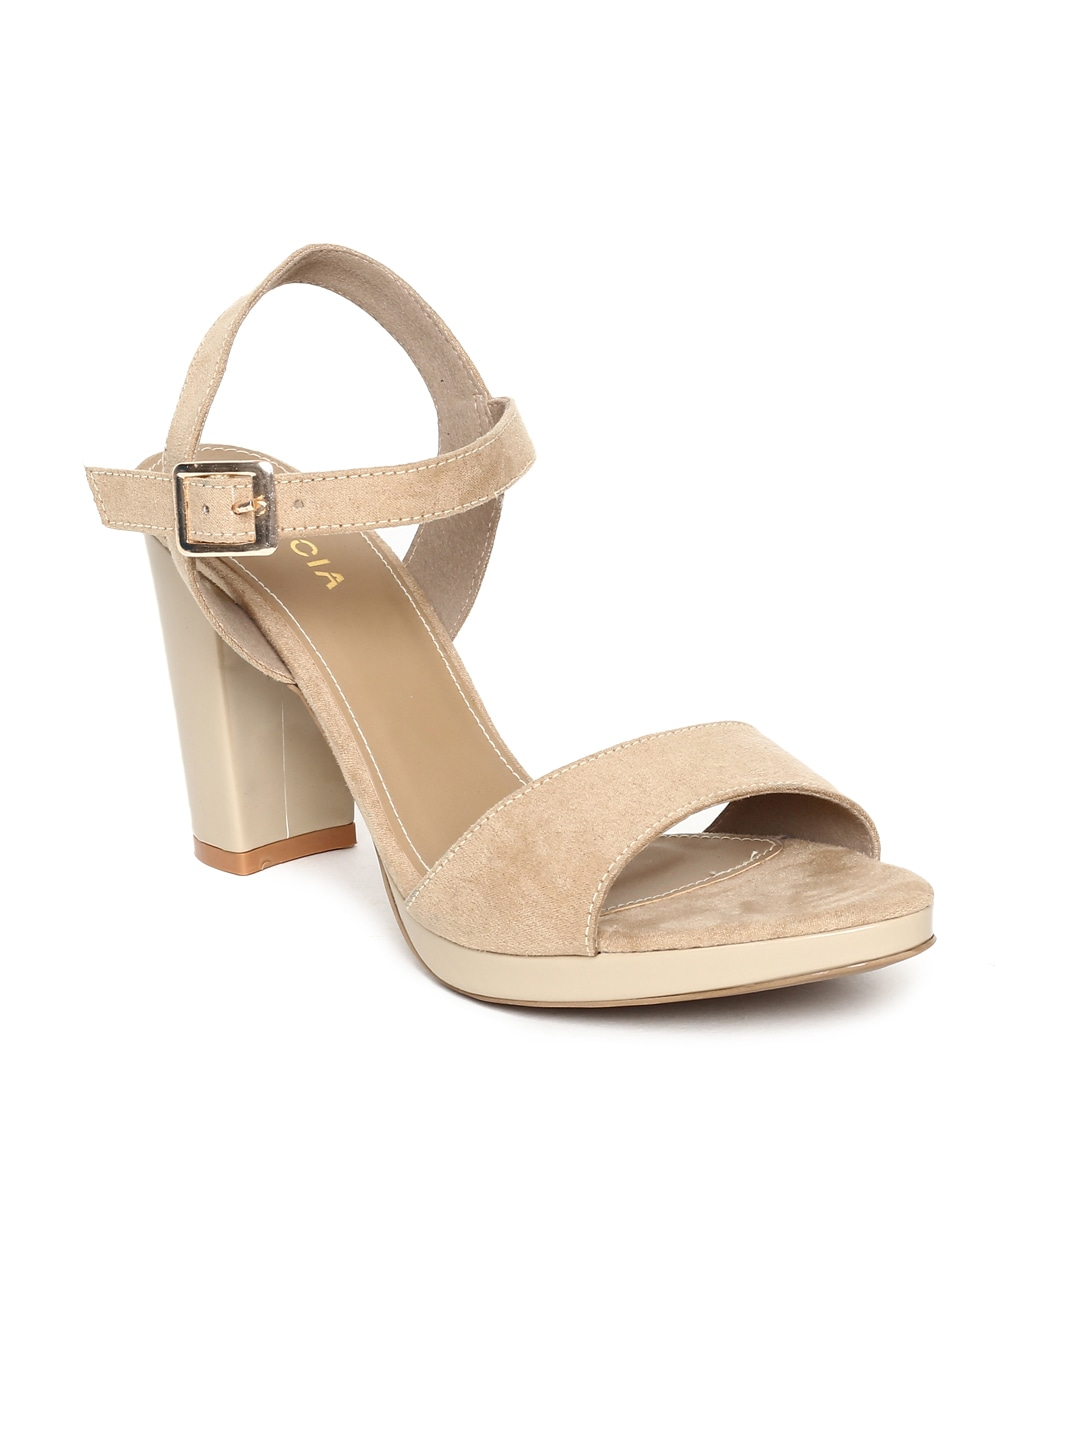 Beige Solid Sandals